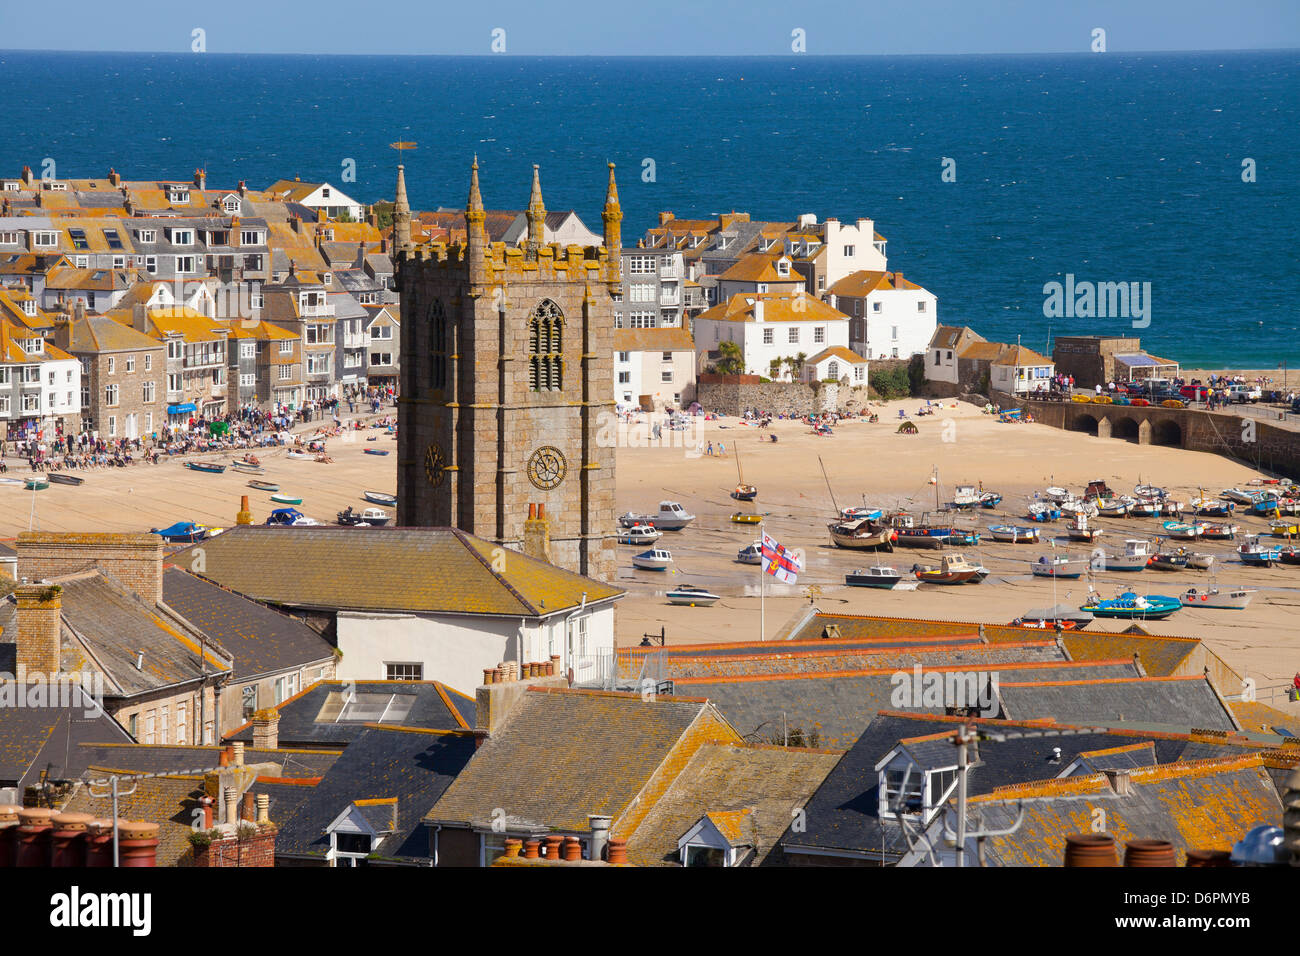 View over St. Ives, Cornwall, England, United Kingdom, Europe - Stock Image